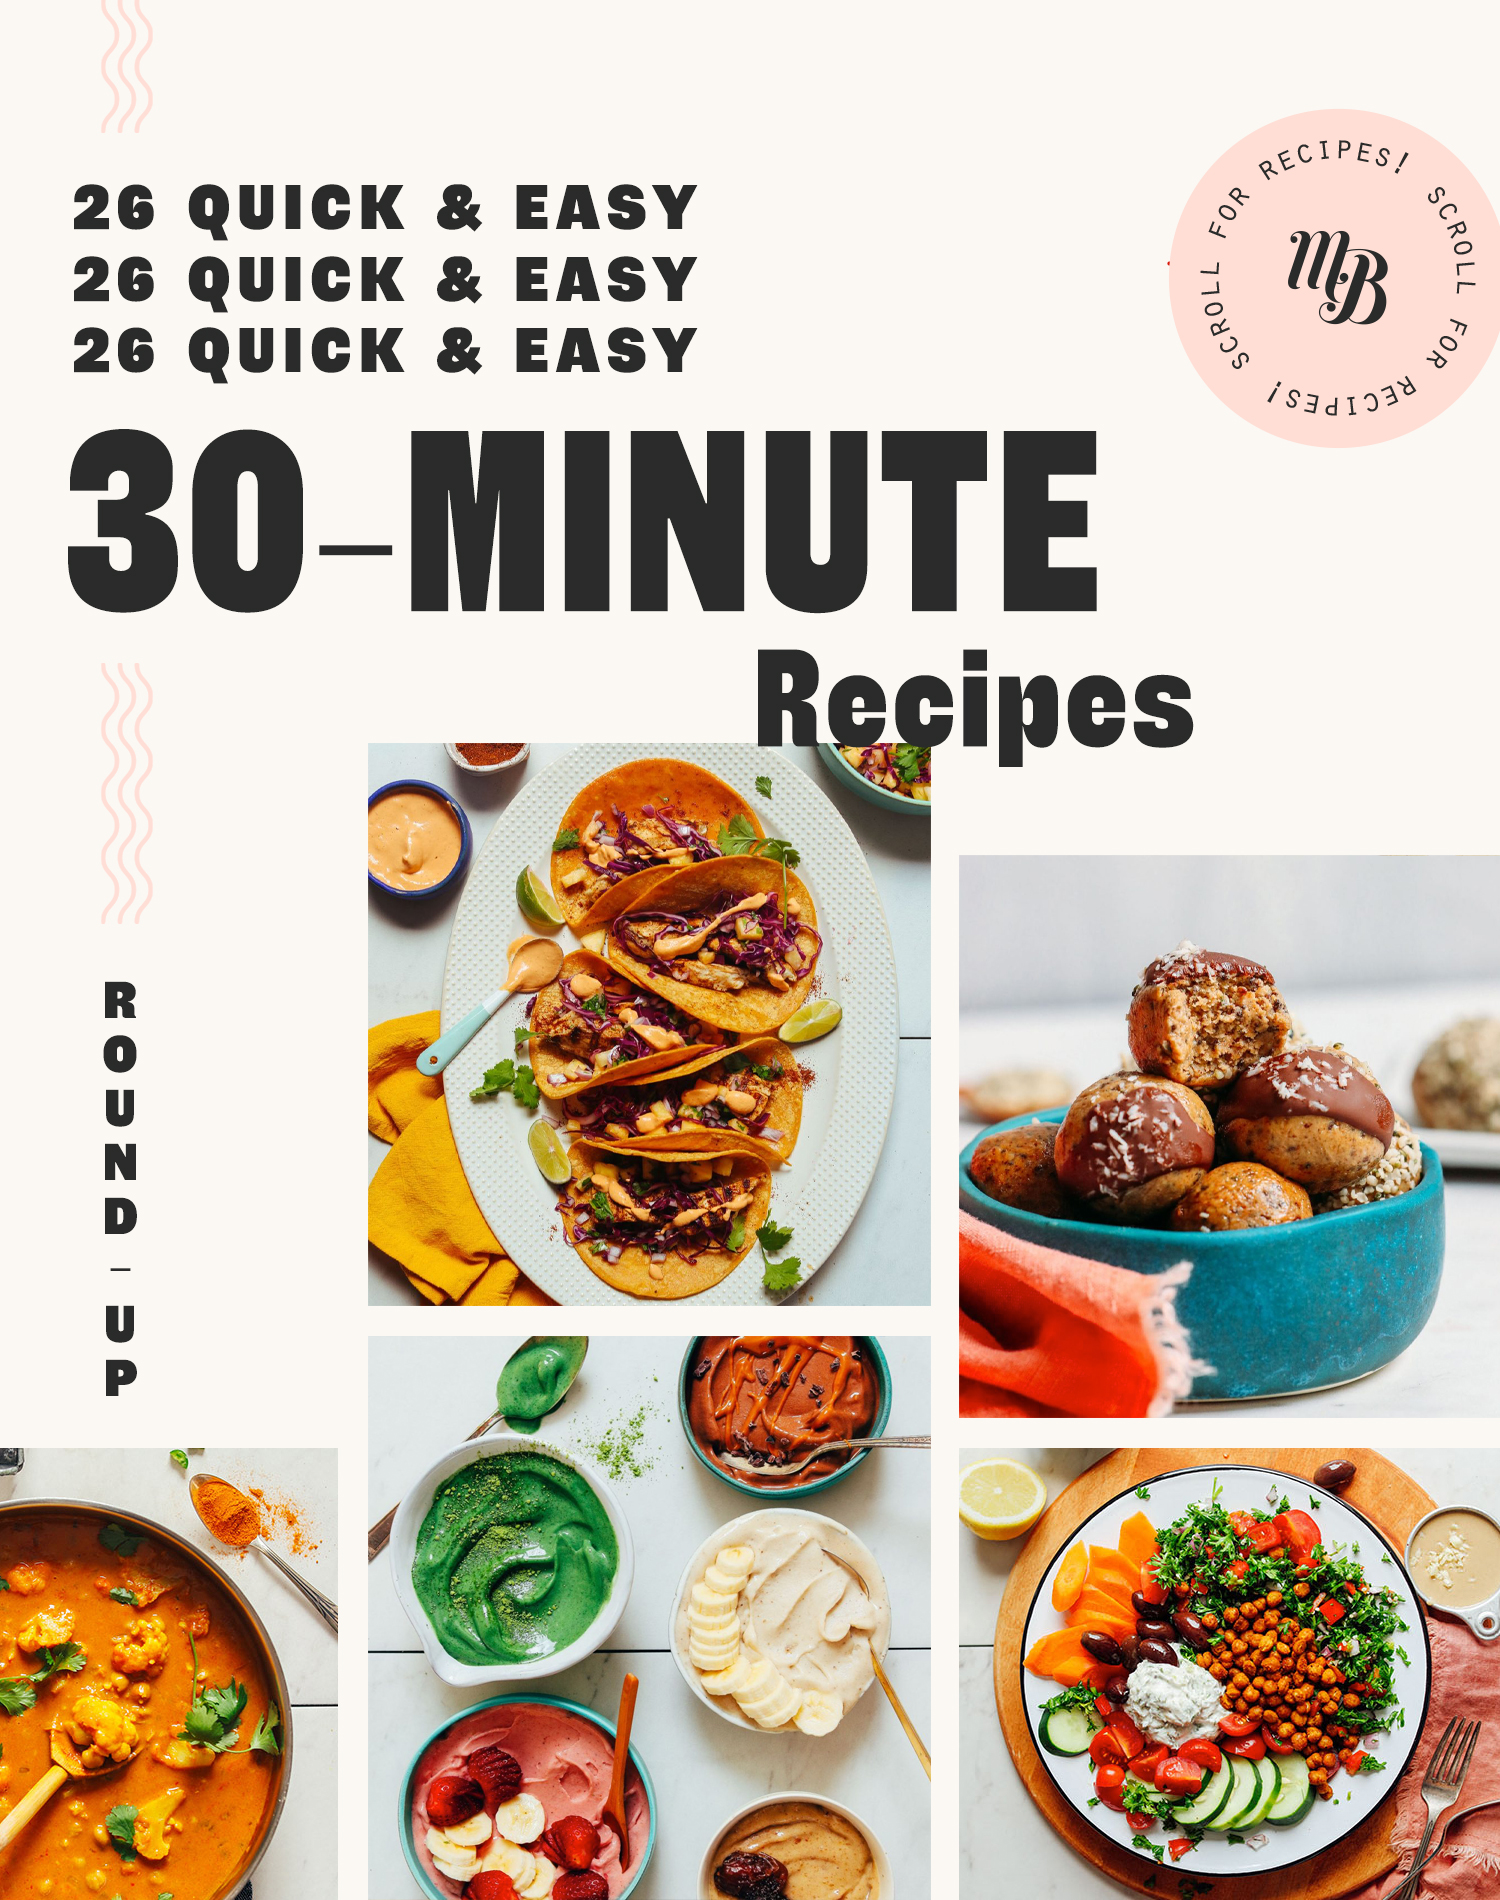 Tacos, energy bites, and other quick and easy recipes